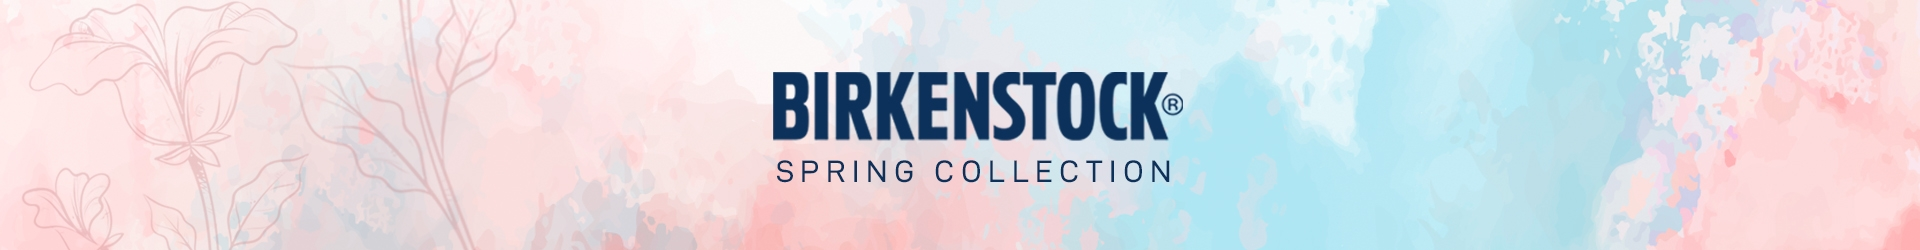 BIRKENSTOCK Spring Collection